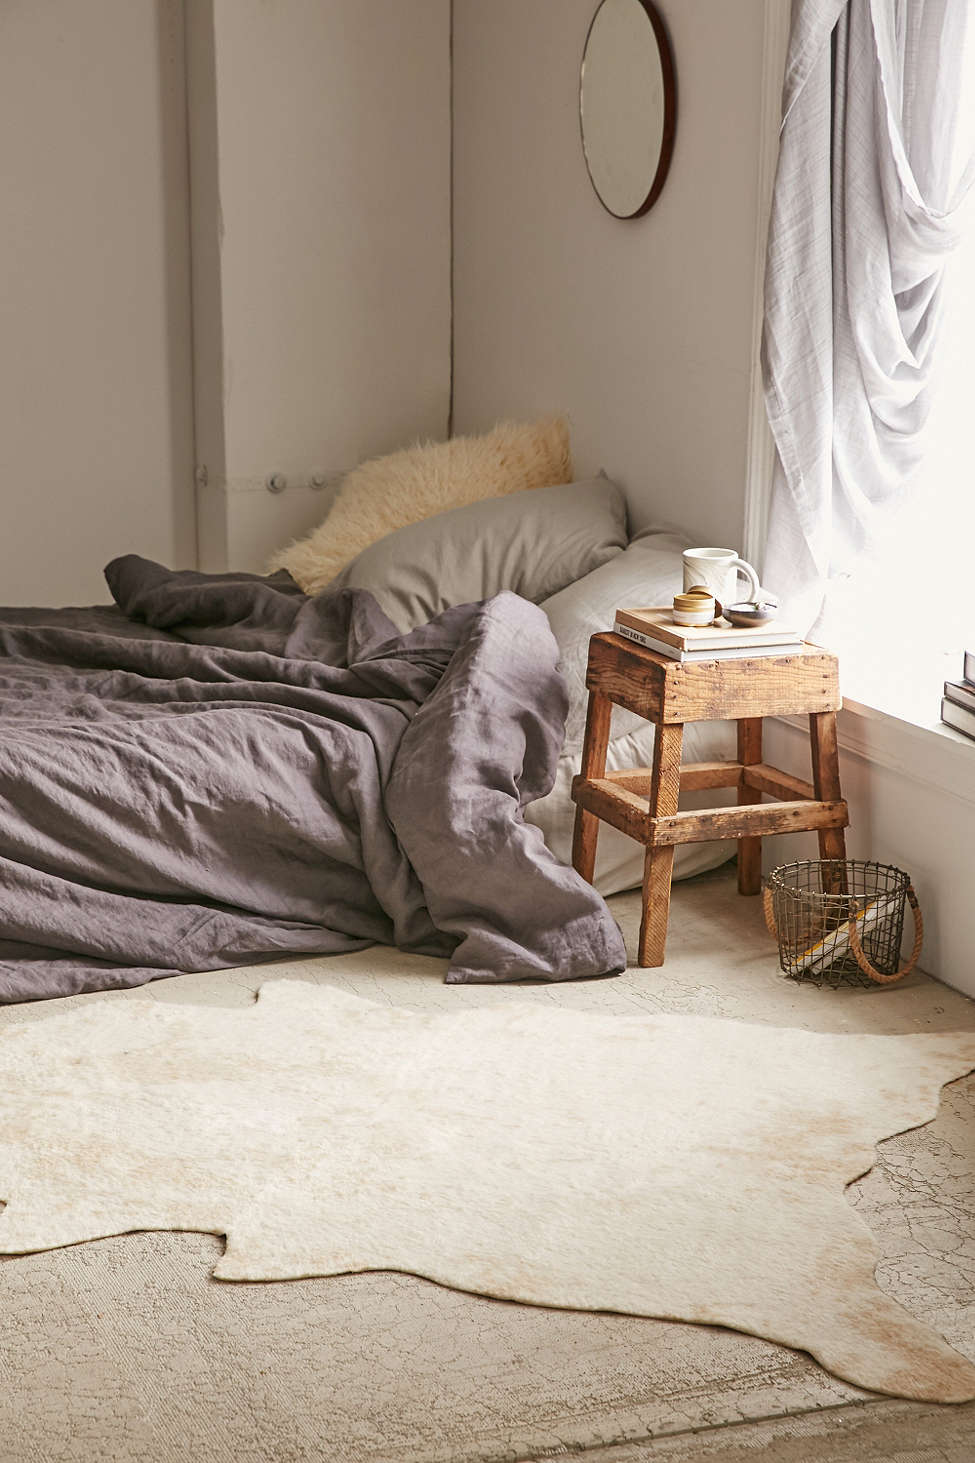 A dreamy bedroom for lazy winter mornings